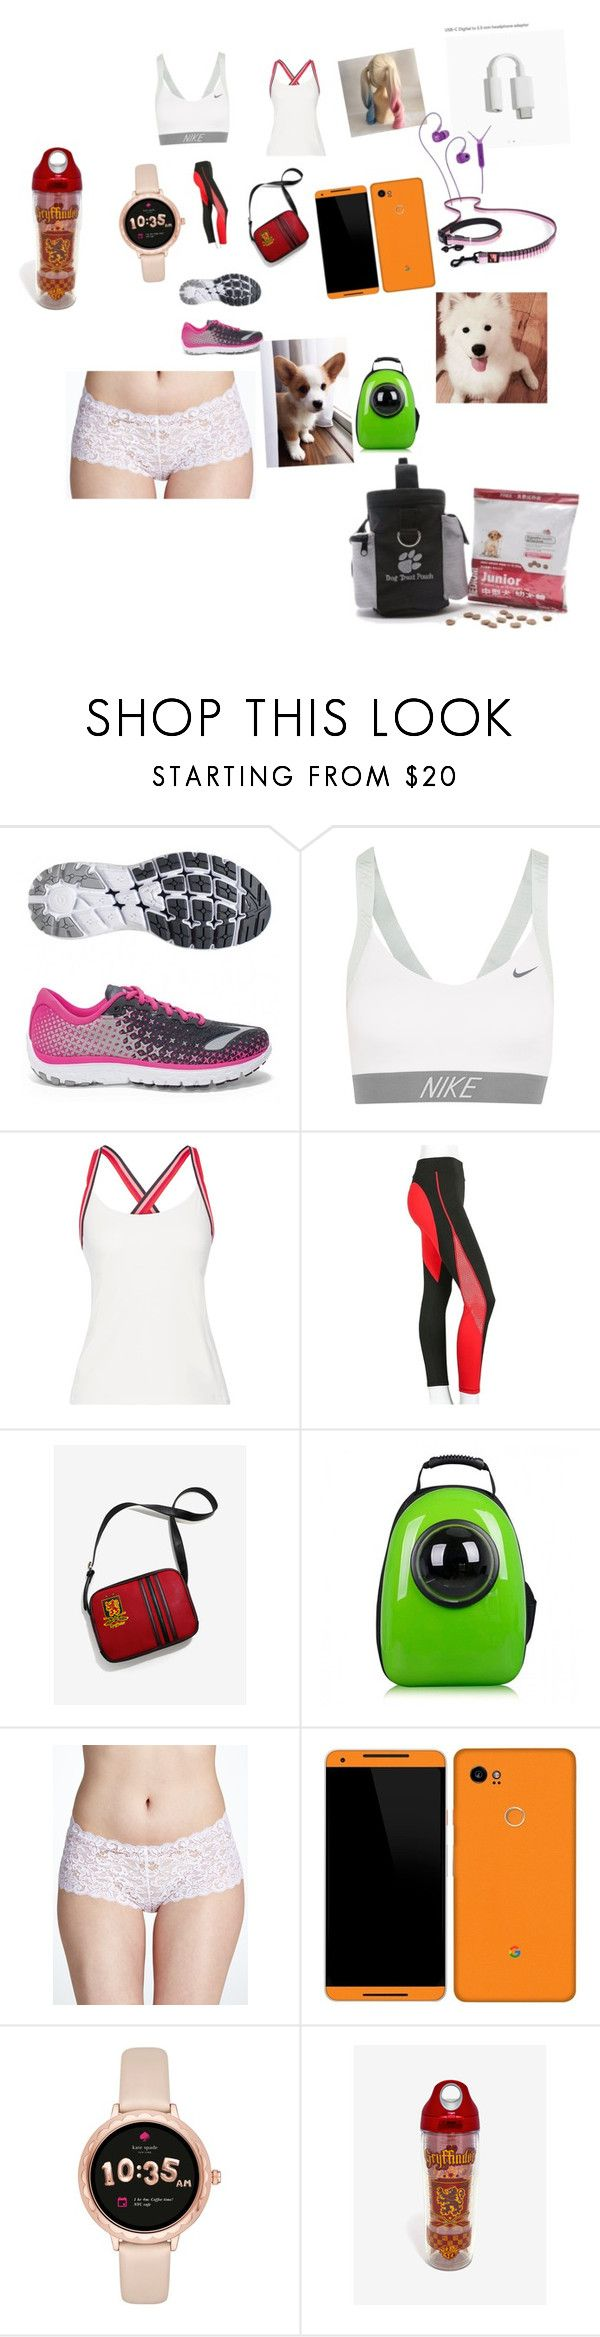 """run"" by alicewholocked ❤ liked on Polyvore featuring Brooks, NIKE, Tory Sport, Warner Bros., Corgi, Hanro and Kate Spade"